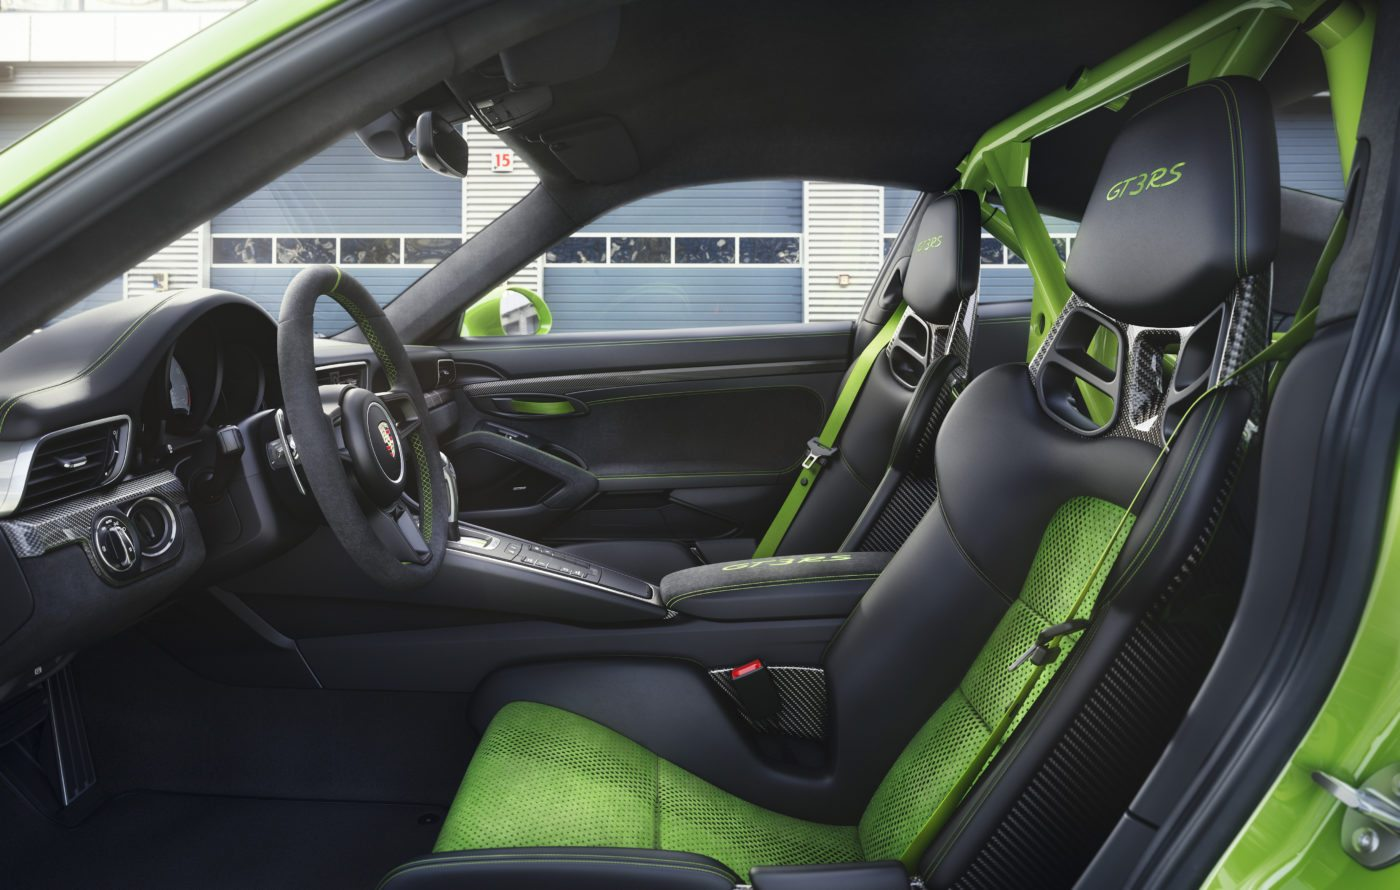 Porsche 911 GT3 RS specs include a roll bar and racing seats